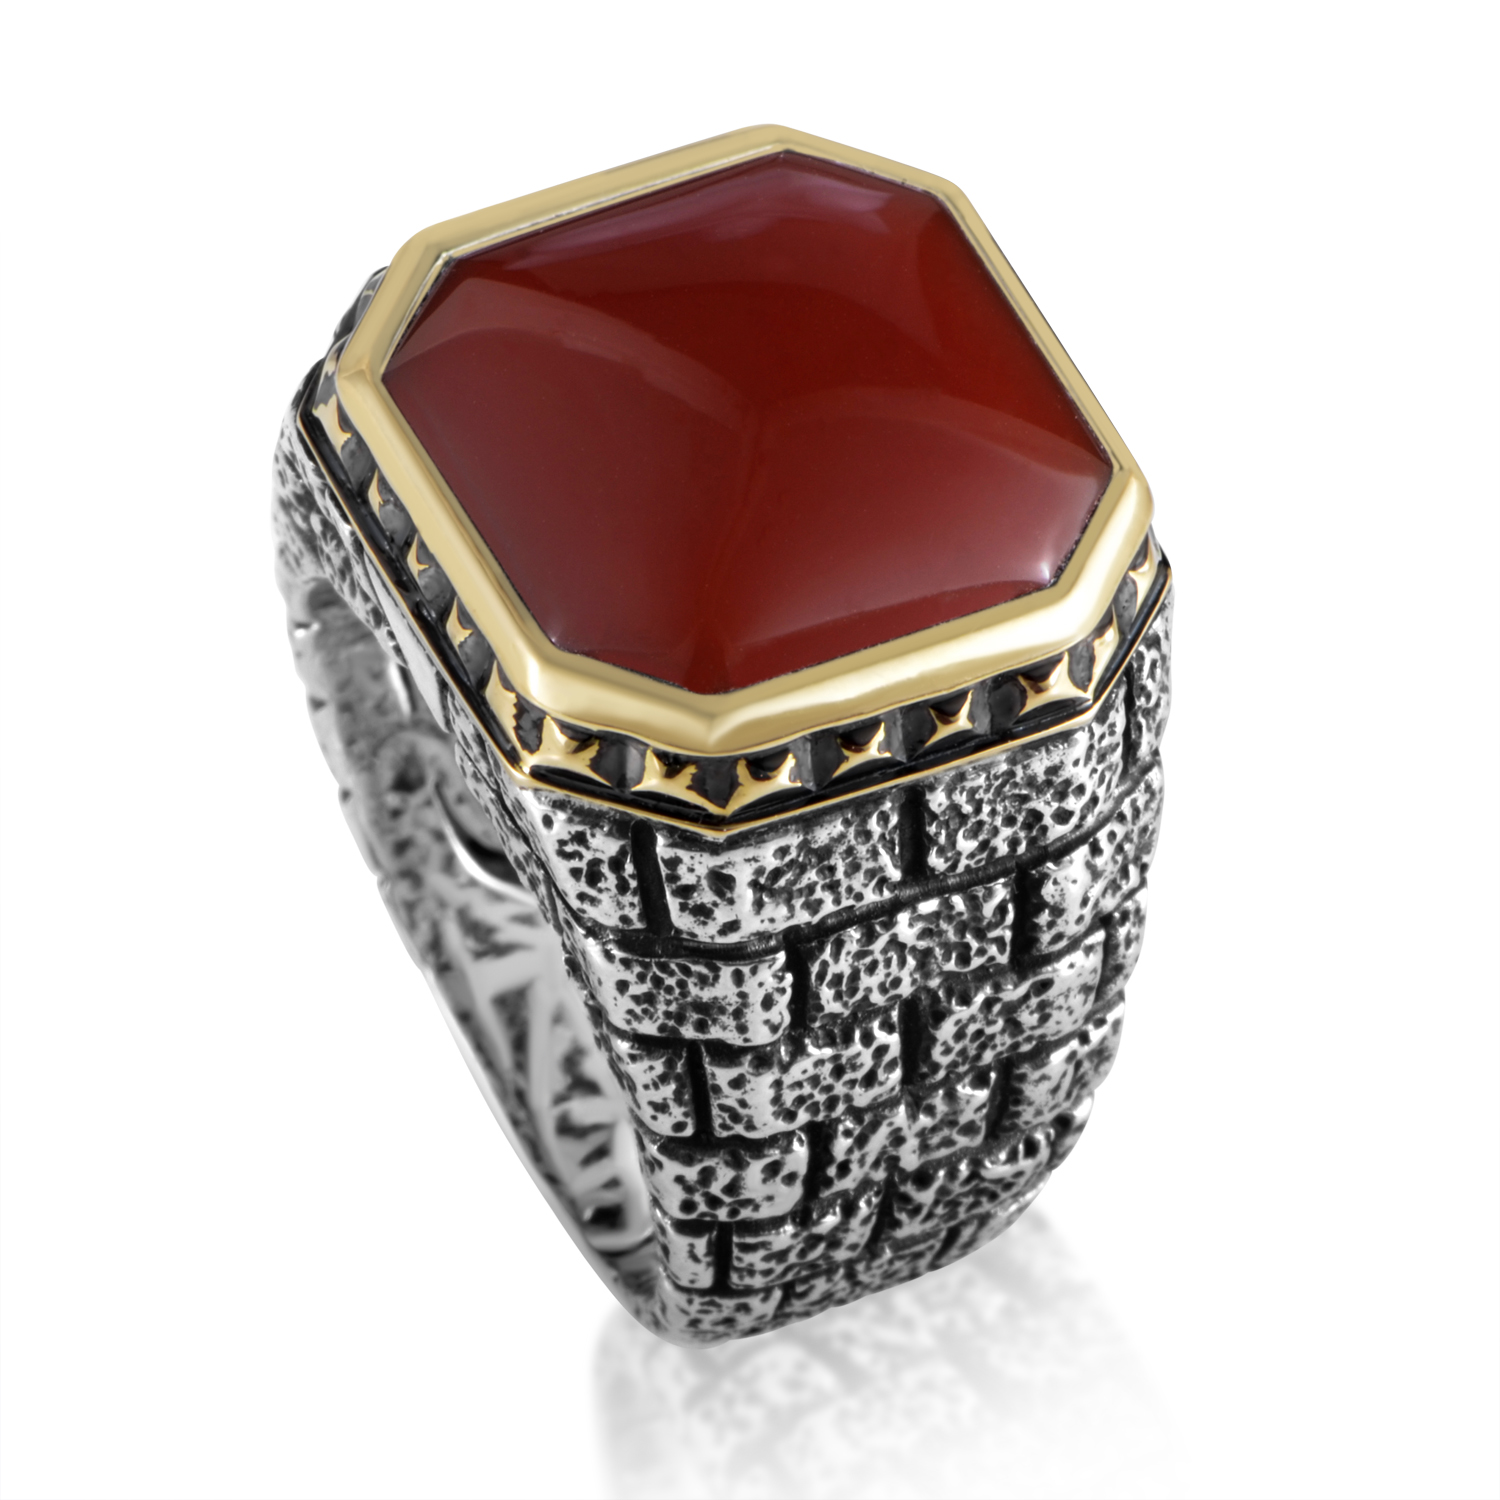 London Calling Silver & 18K Yellow Gold Red Agate Ring